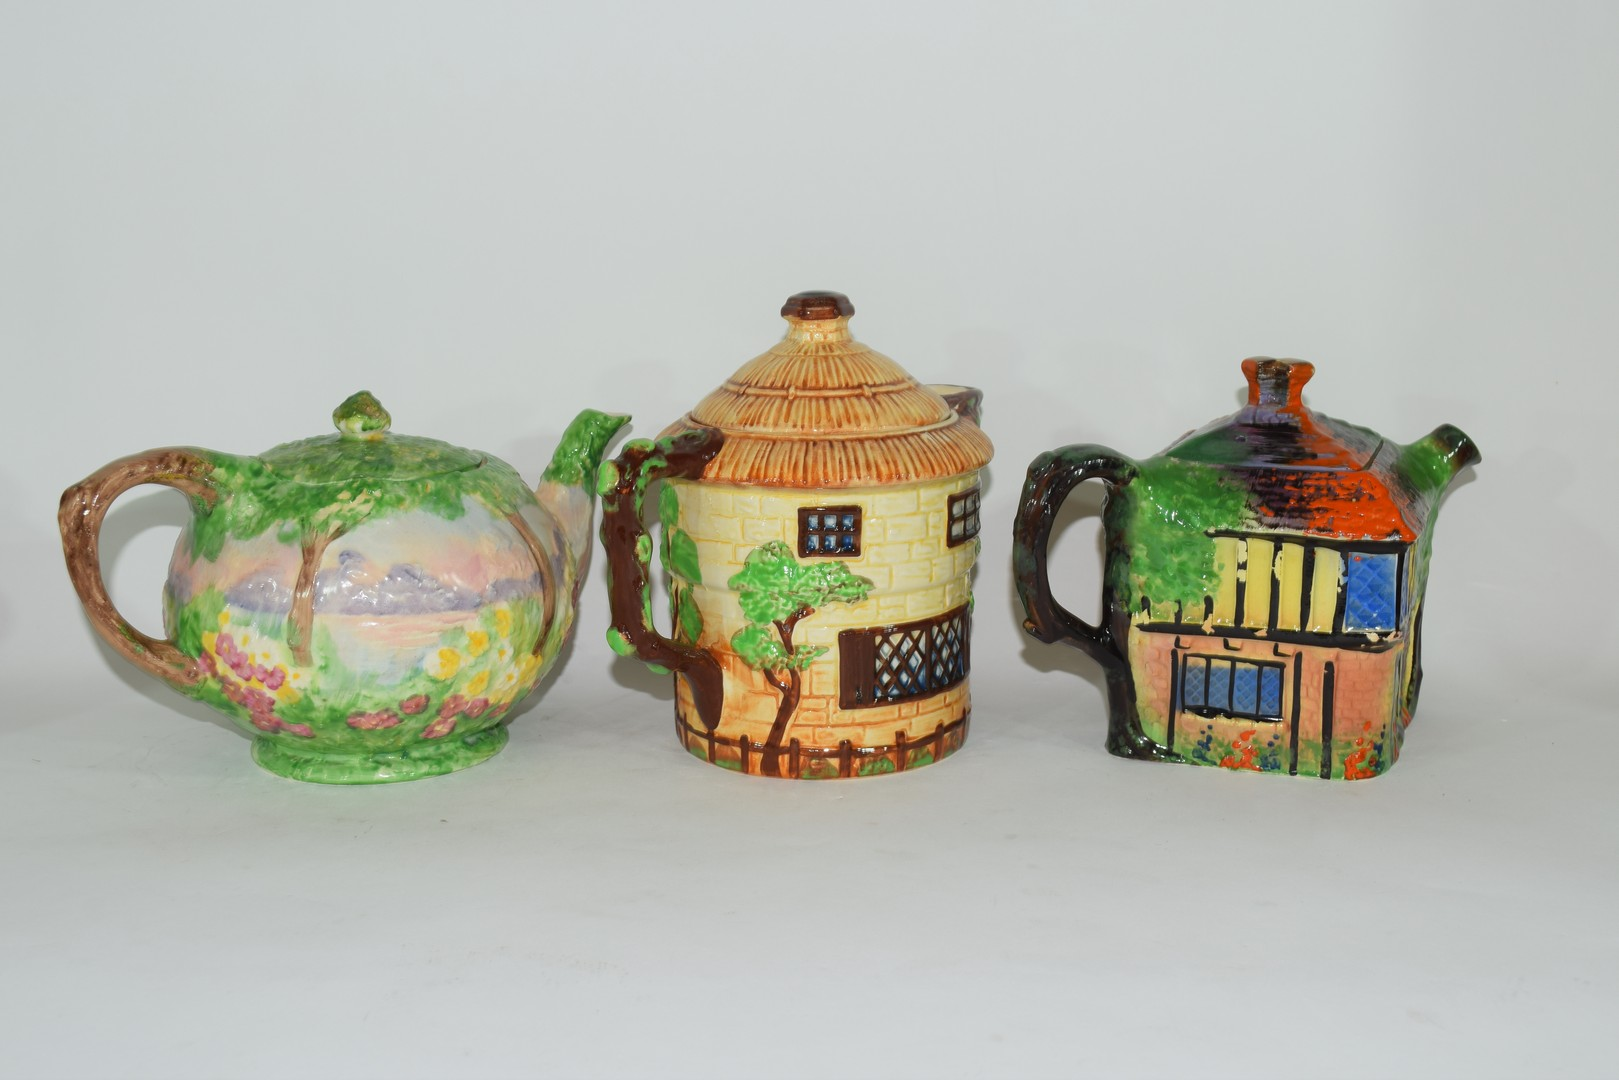 Group of mid-20th century cottage style tea pots - Image 4 of 4